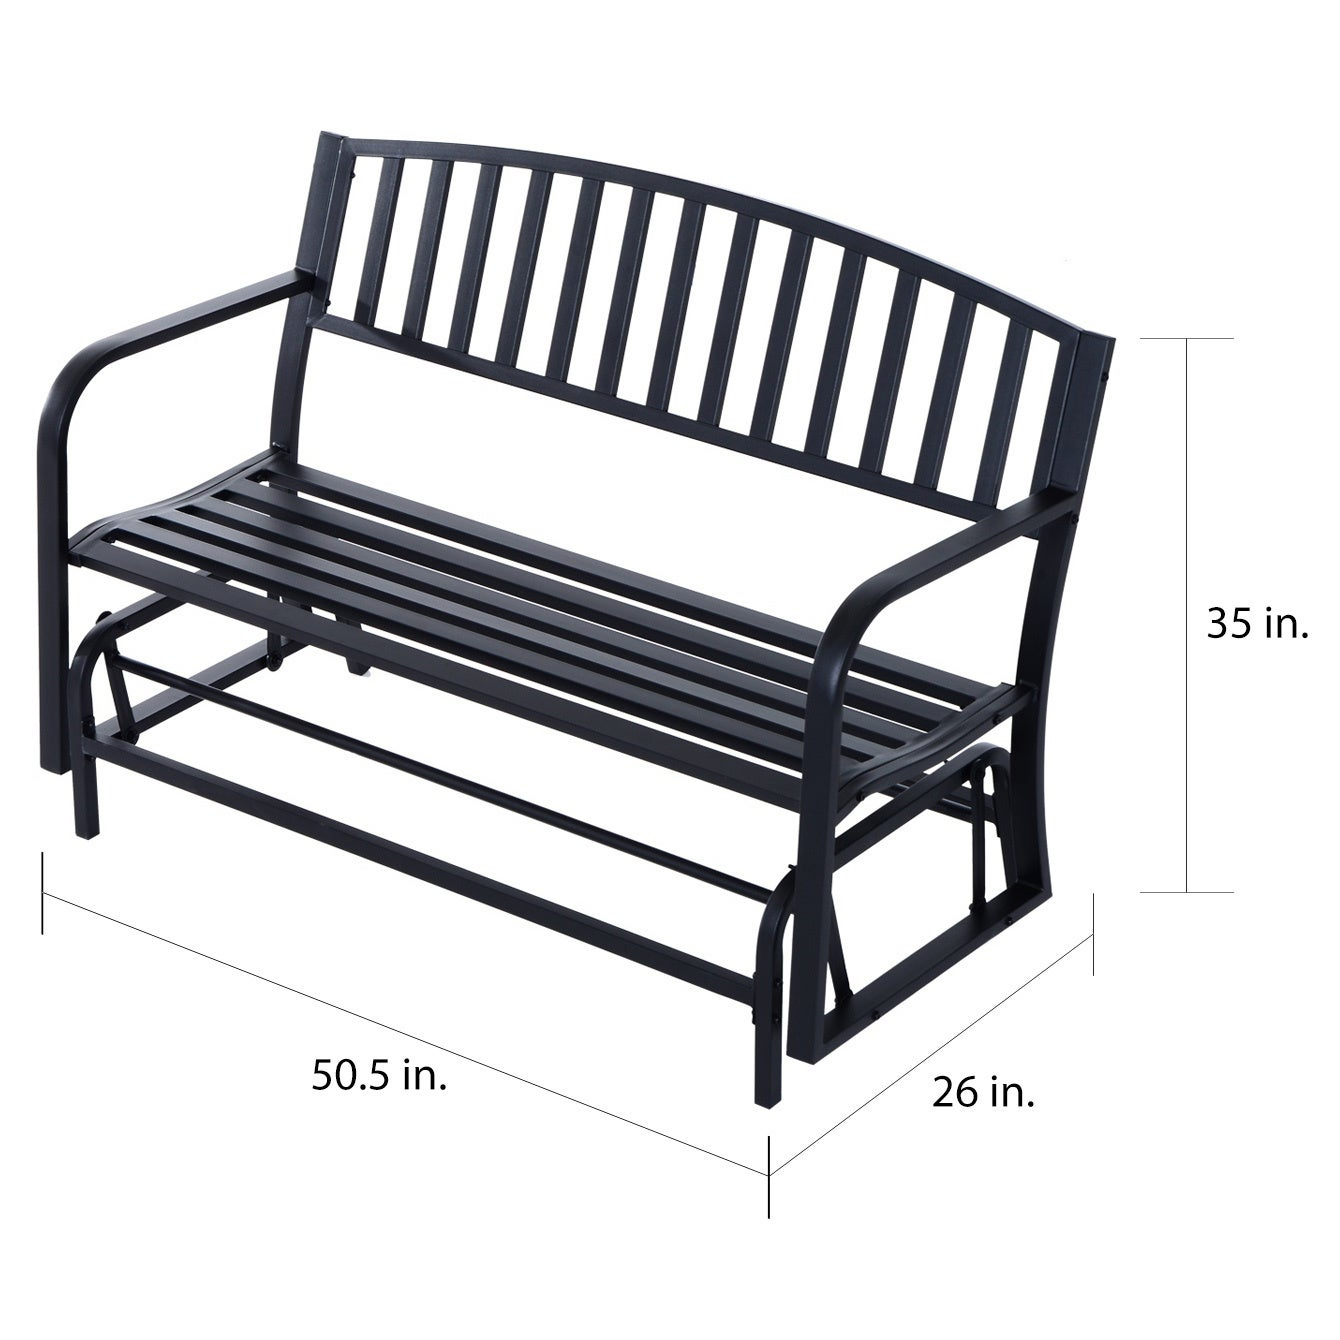 Outsunny 50 Inch Outdoor Steel Patio Swing Glider Bench – Black Pertaining To Metal Powder Coat Double Seat Glider Benches (View 14 of 25)